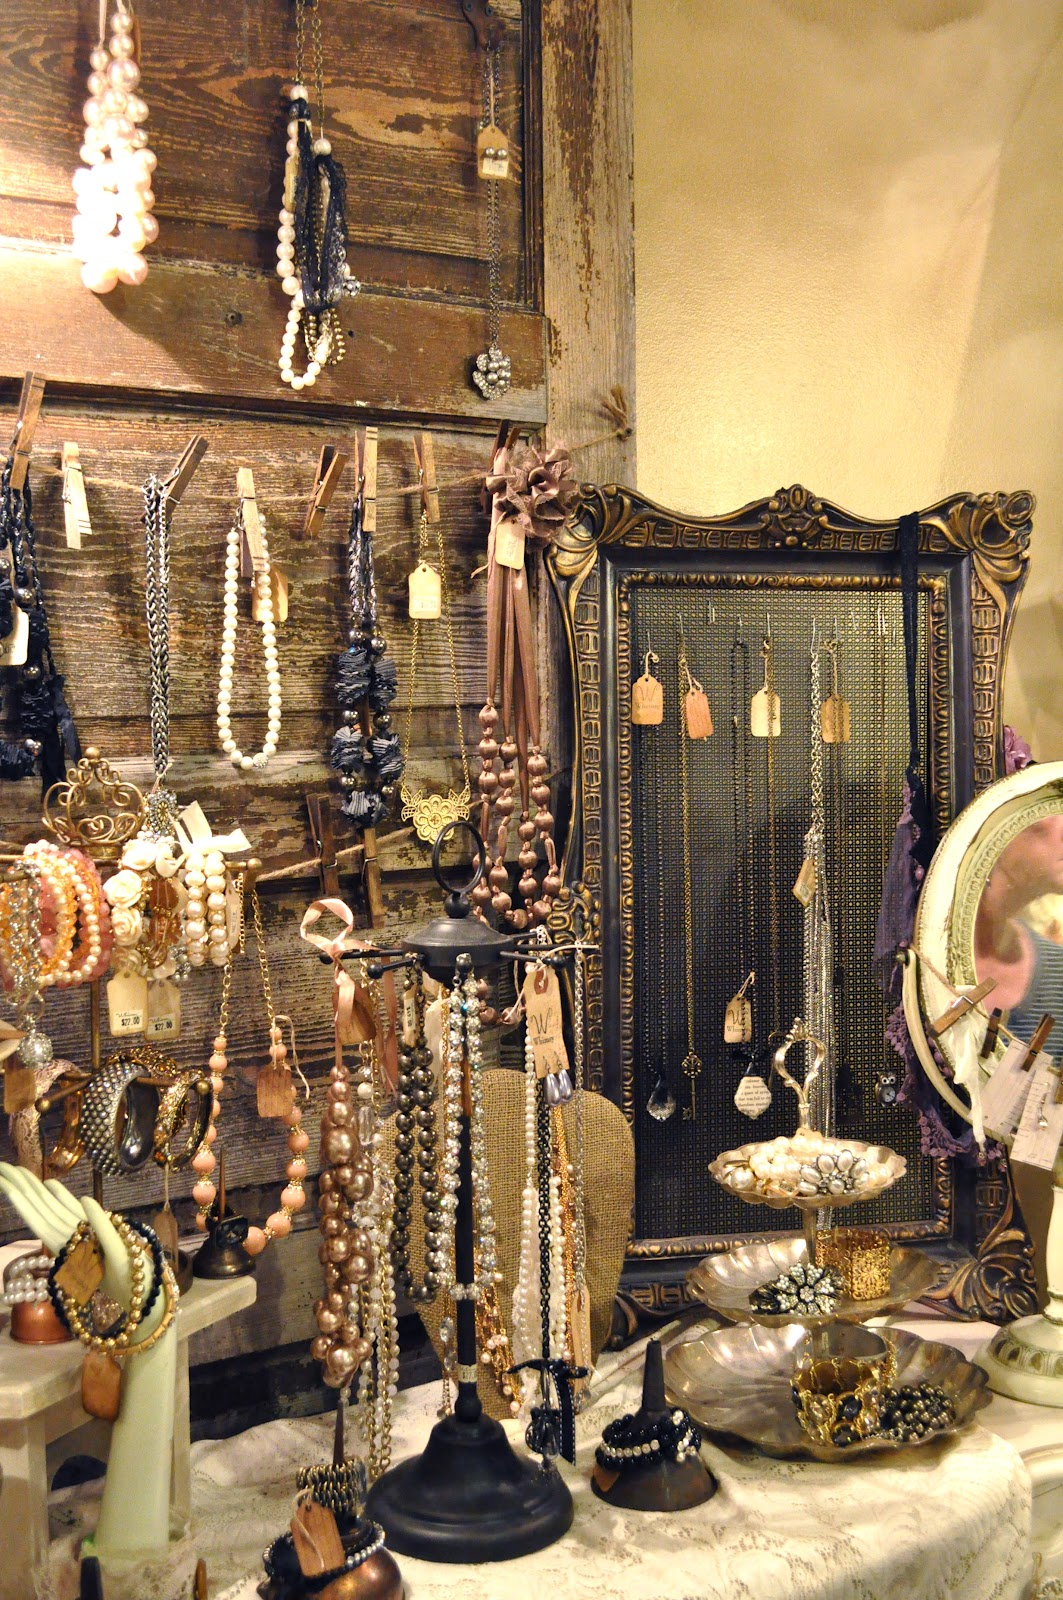 Vendor event ideas on pinterest jewelry displays for Jewelry displays